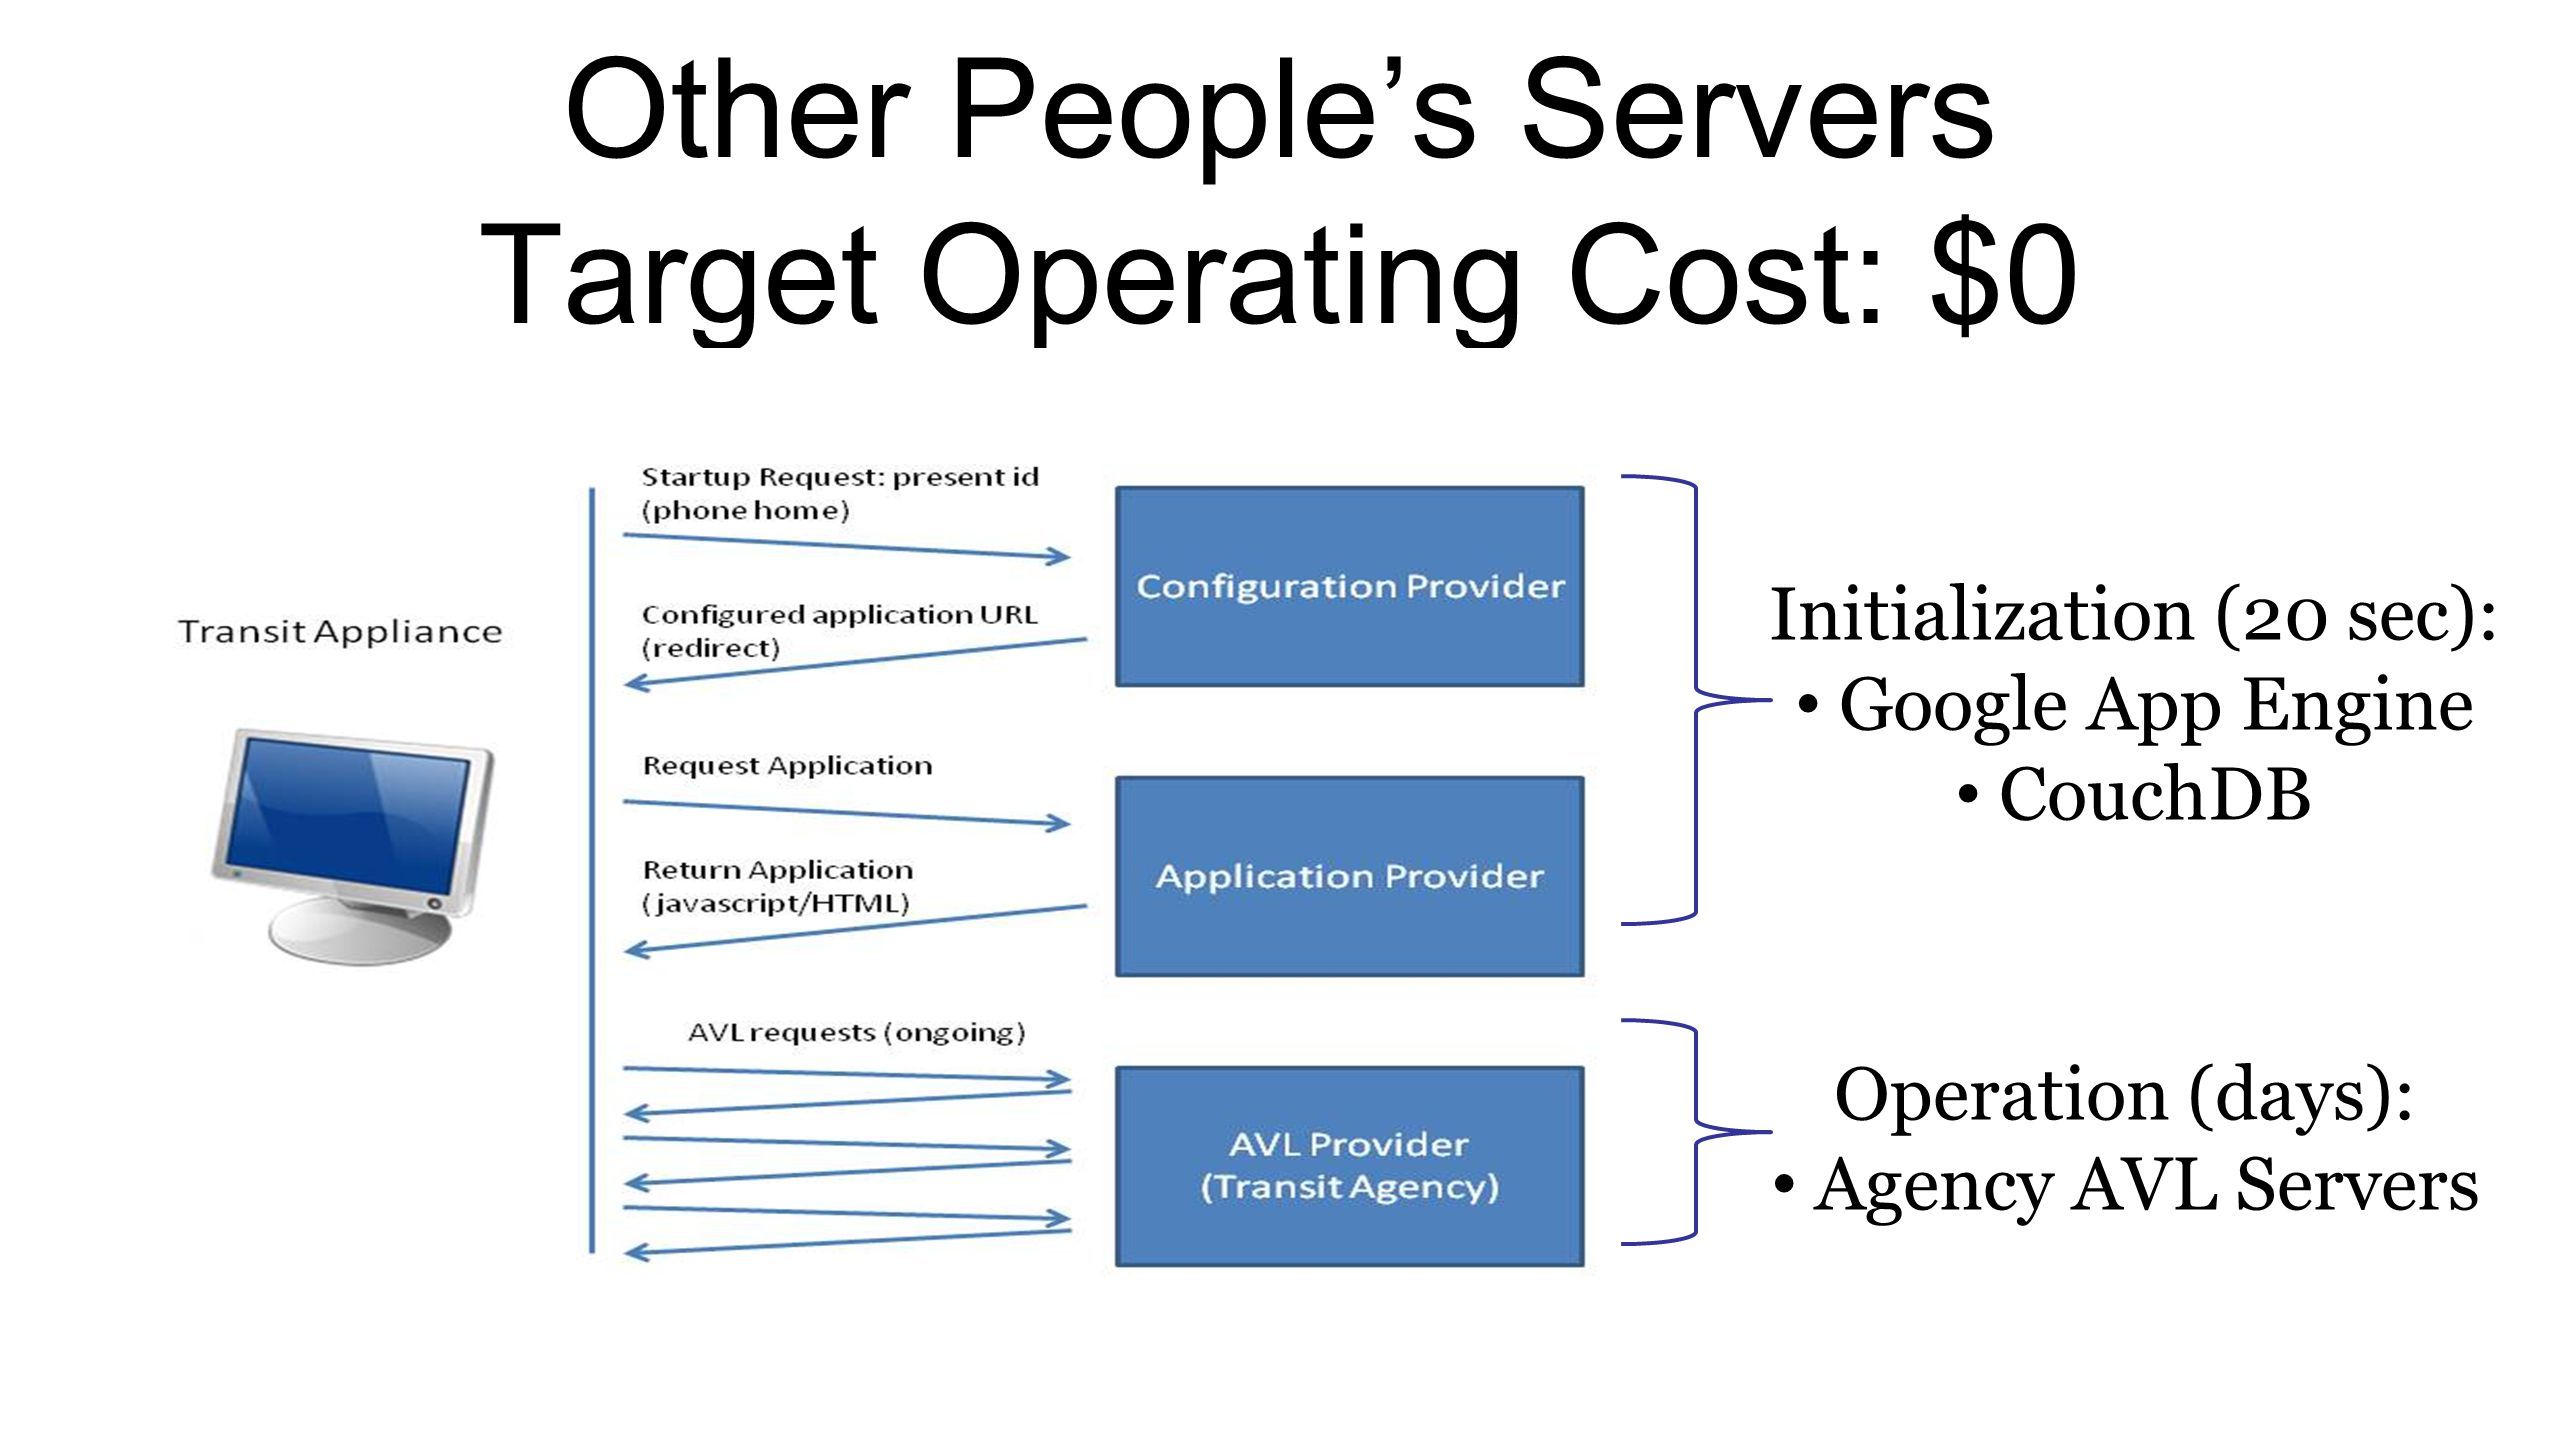 Other People's Servers Target Operating Cost: $0 Initialization (20 sec): Google App Engine CouchDB Operation (days): Agency AVL Servers